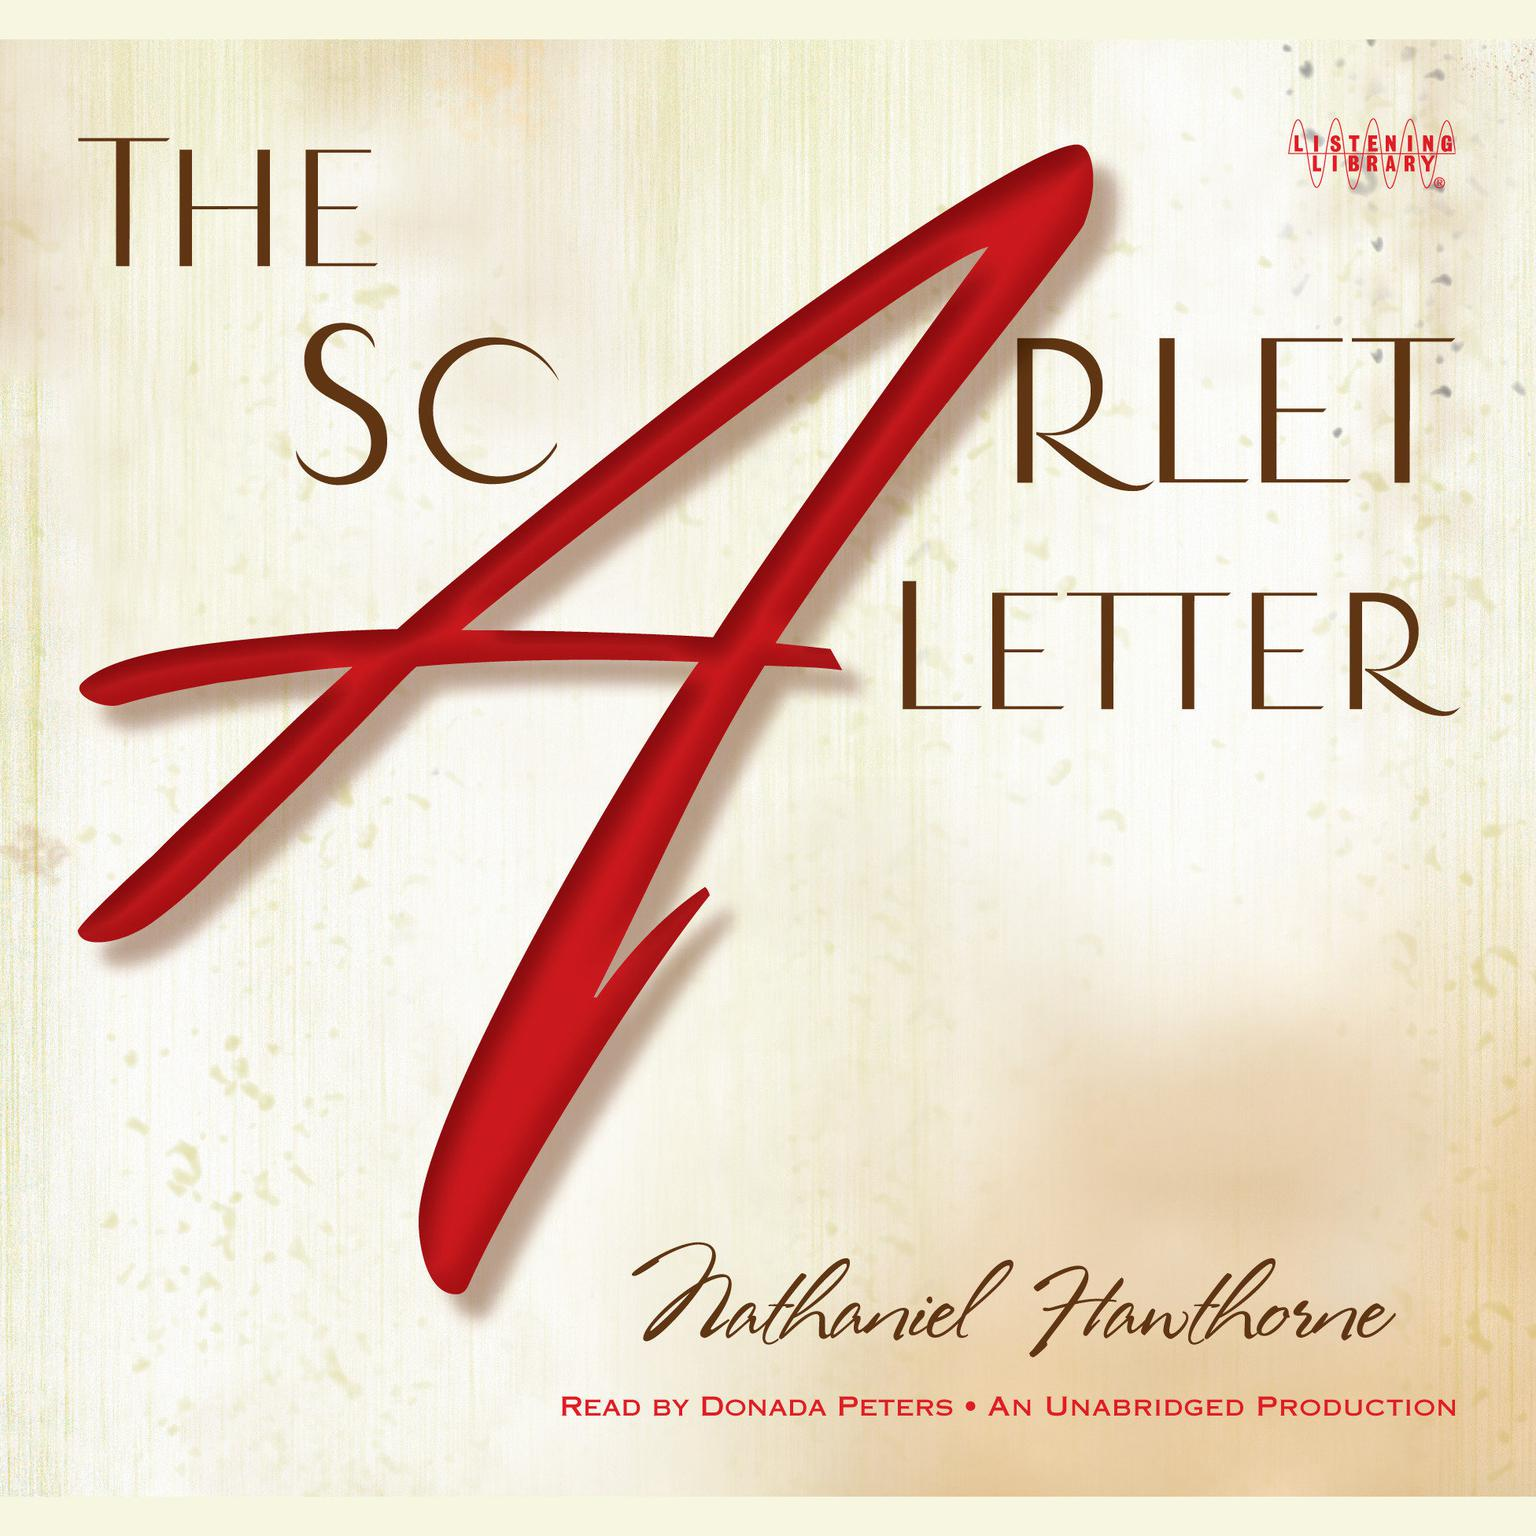 scarlet letter visual essay A scarlet romanceit is the year 1644, boston massachusetts, and the stage is set for one of the most famous romance novels of our time the scarlet letter, by.